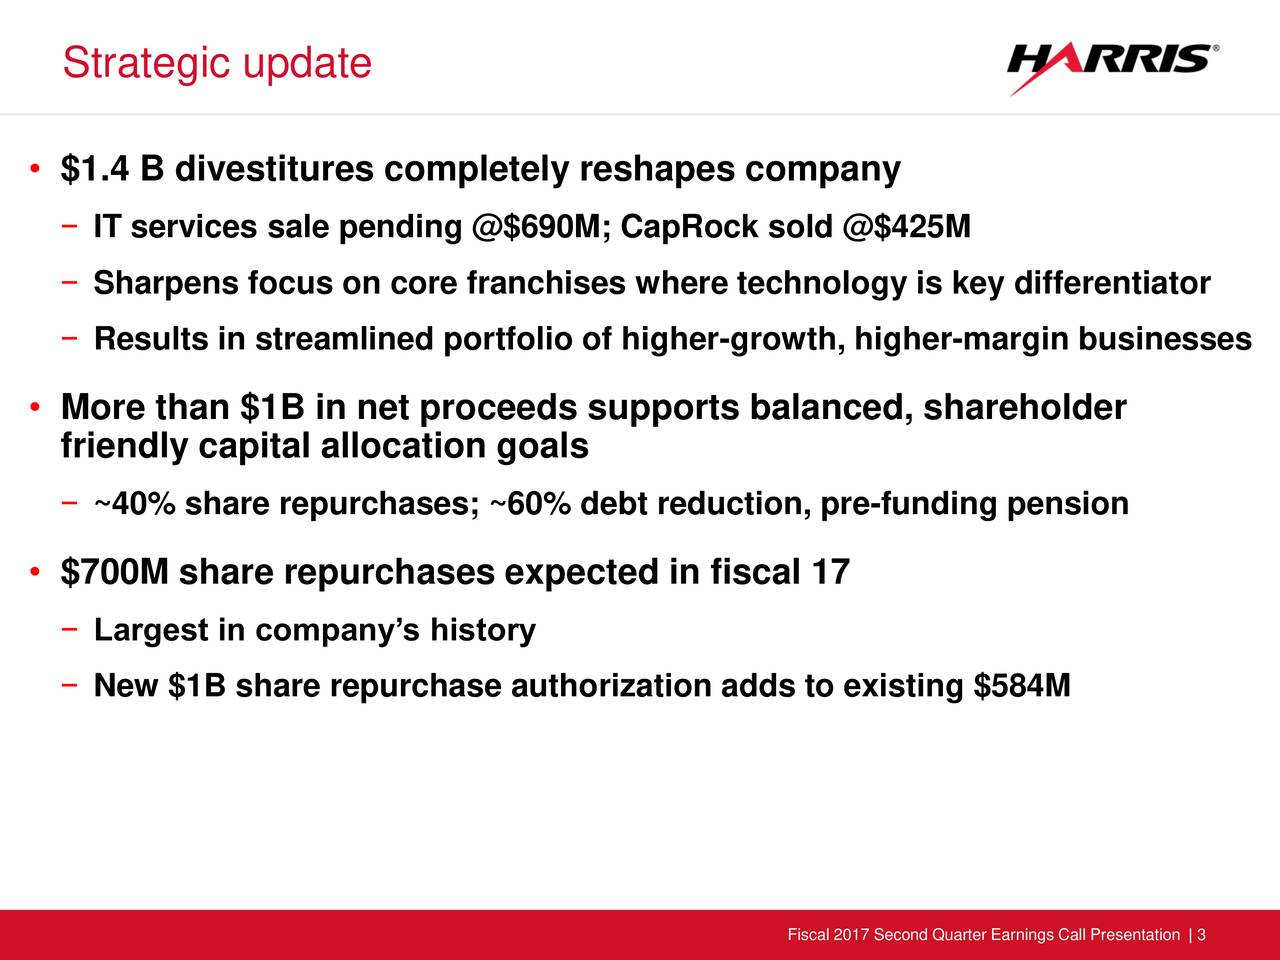 $1.4 B divestitures completely reshapes company IT services sale pending @$690M; CapRock sold @$425M Sharpens focus on core franchises where technology is key differentiator Results in streamlined portfolio of higher-growth, higher-margin businesses More than $1B in net proceeds supports balanced, shareholder friendly capital allocation goals ~40% share repurchases; ~60% debt reduction, pre-funding pension $700M share repurchases expected in fiscal 17 Largest in companys history New $1B share repurchase authorization adds to existing $584M Fiscal 2017 Second Quarter Earnings Call Presentation | 3